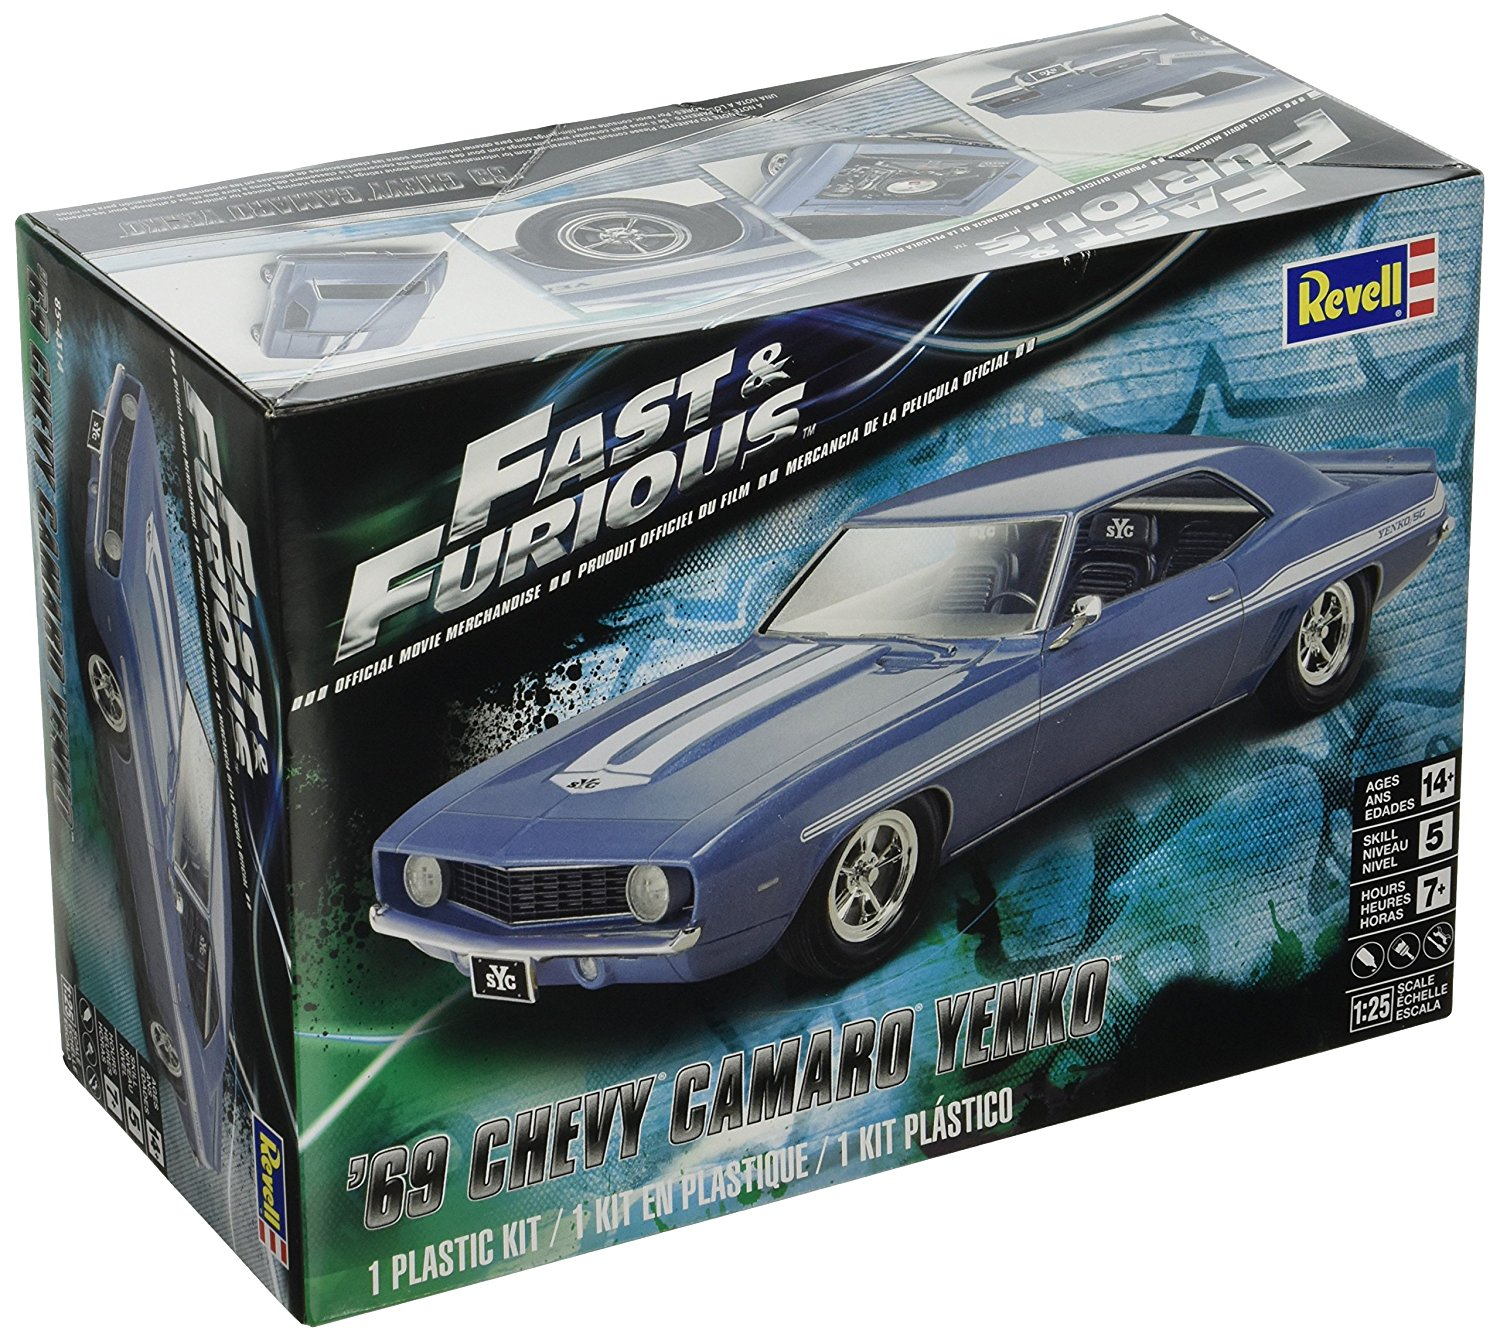 Fast & Furious 69 Chevy Yenko Camaro Model Kit, Construct your own Fast & Furious car with... by